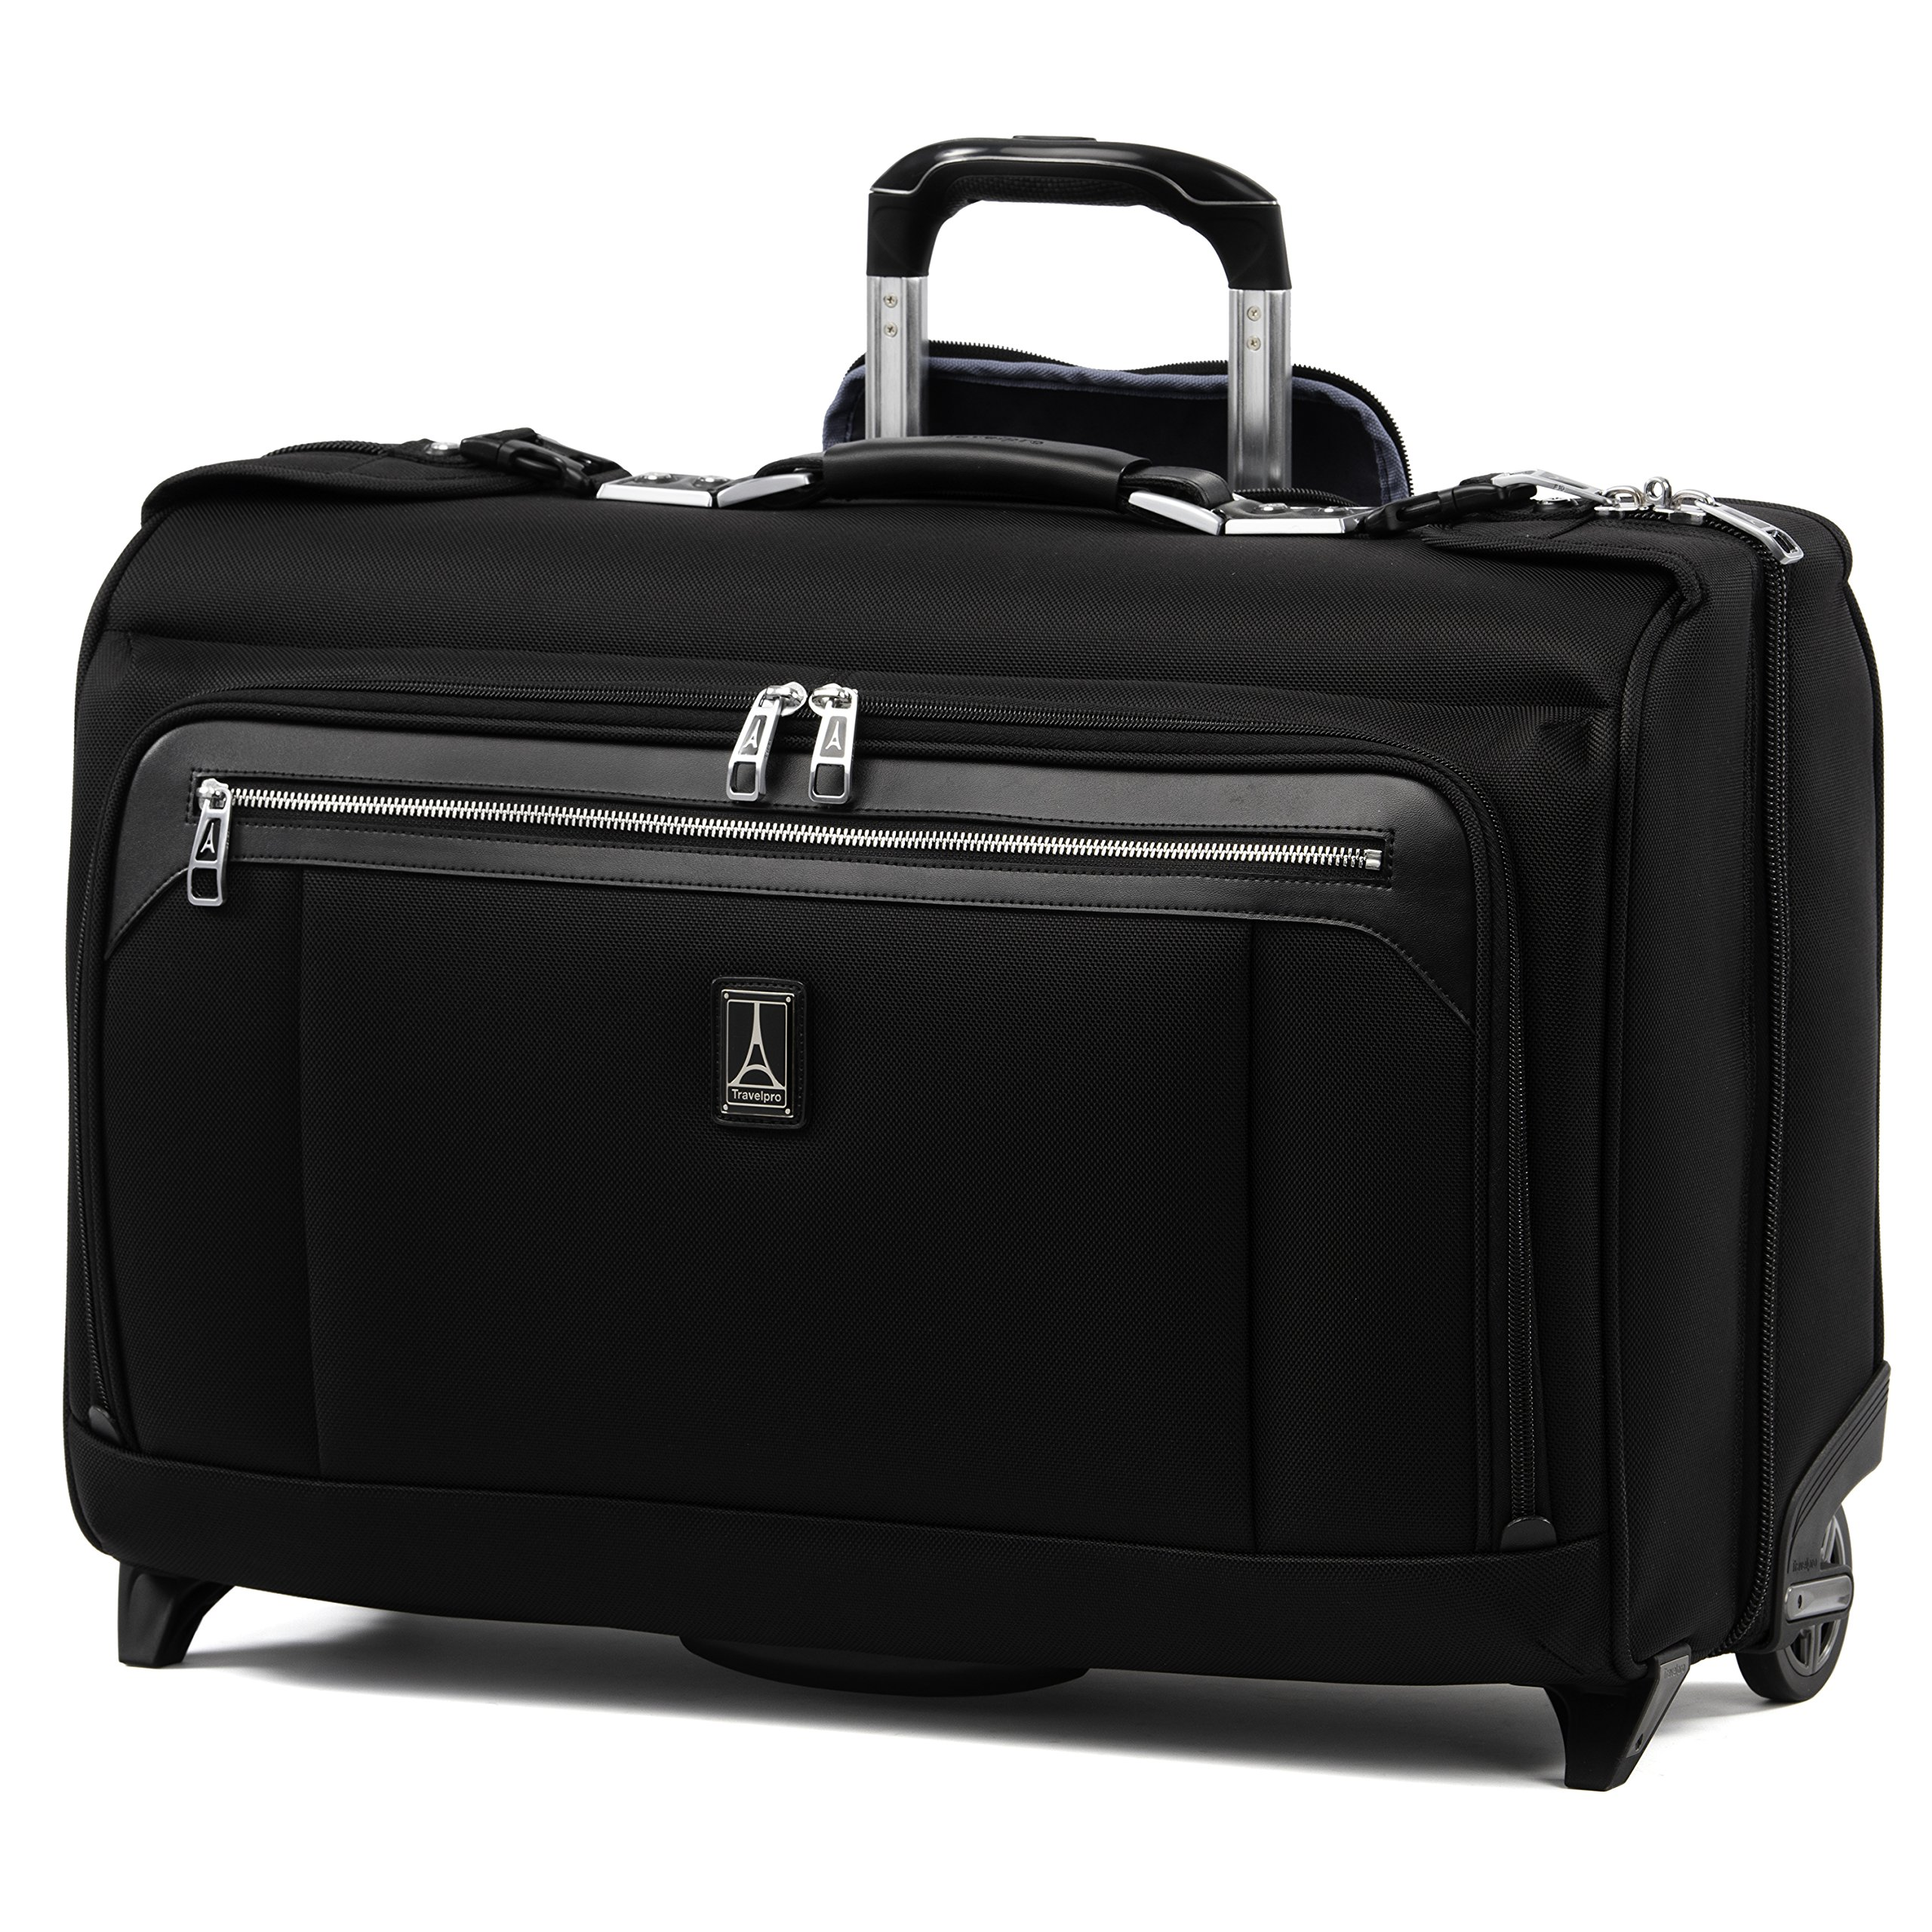 Travelpro Luggage Platinum Elite 22'' Carry-on Rolling Garment Bag, Suitcase, Shadow Black